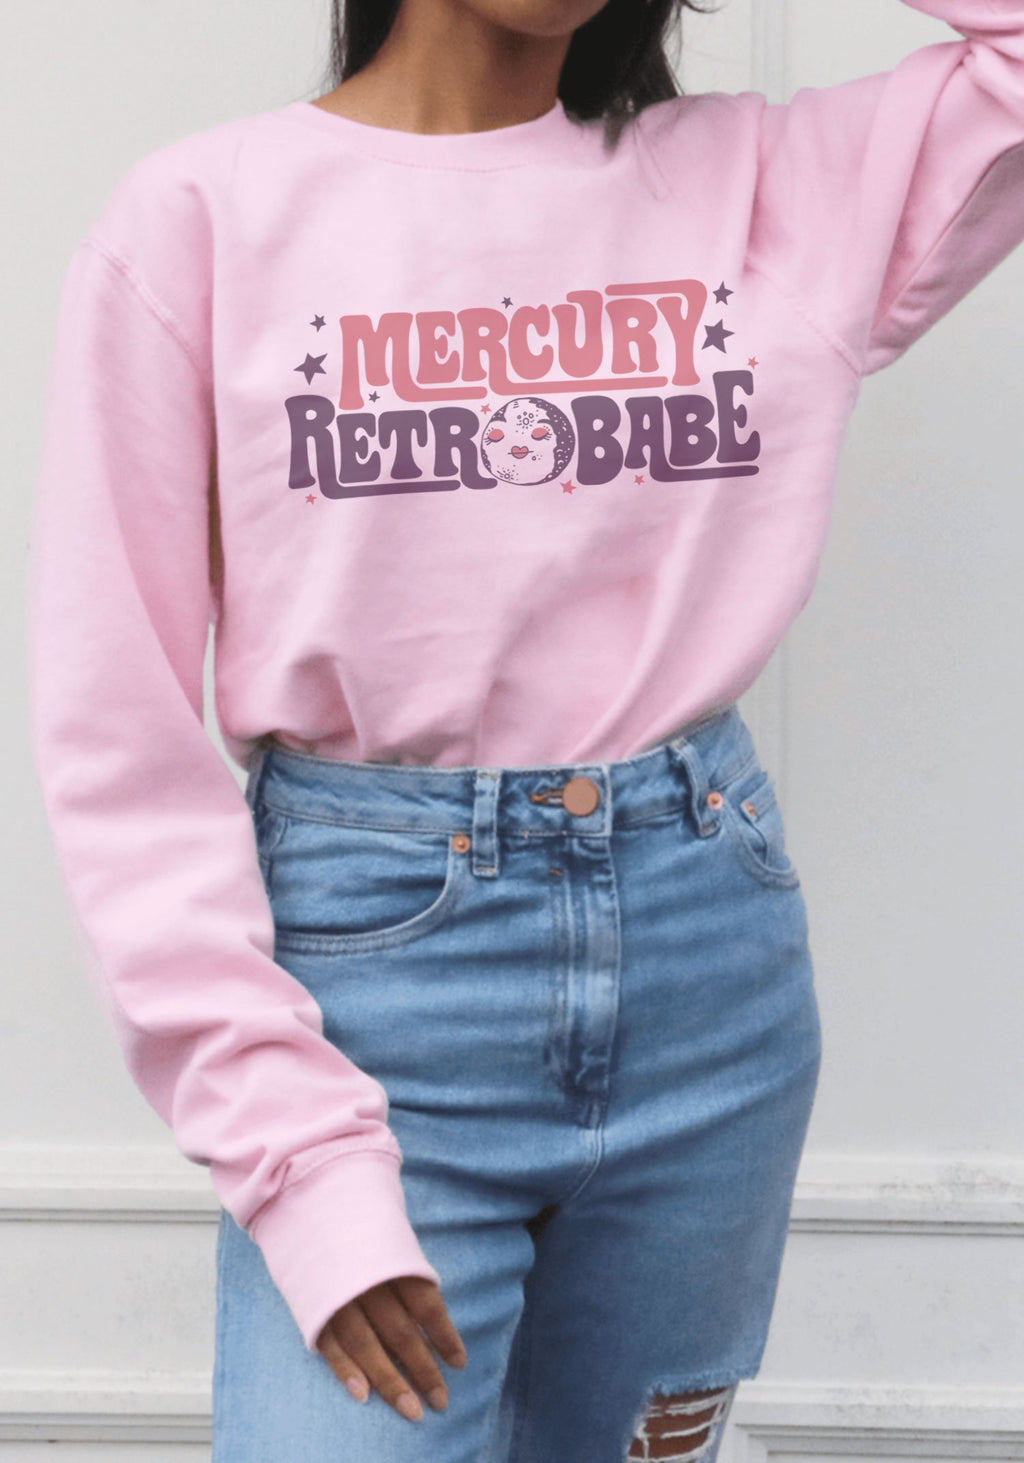 Mercury Retrobabe Sweatshirt / sweatshirts with sayings for women / vintage style 70s 60s cozy / retrograde astrology sweater